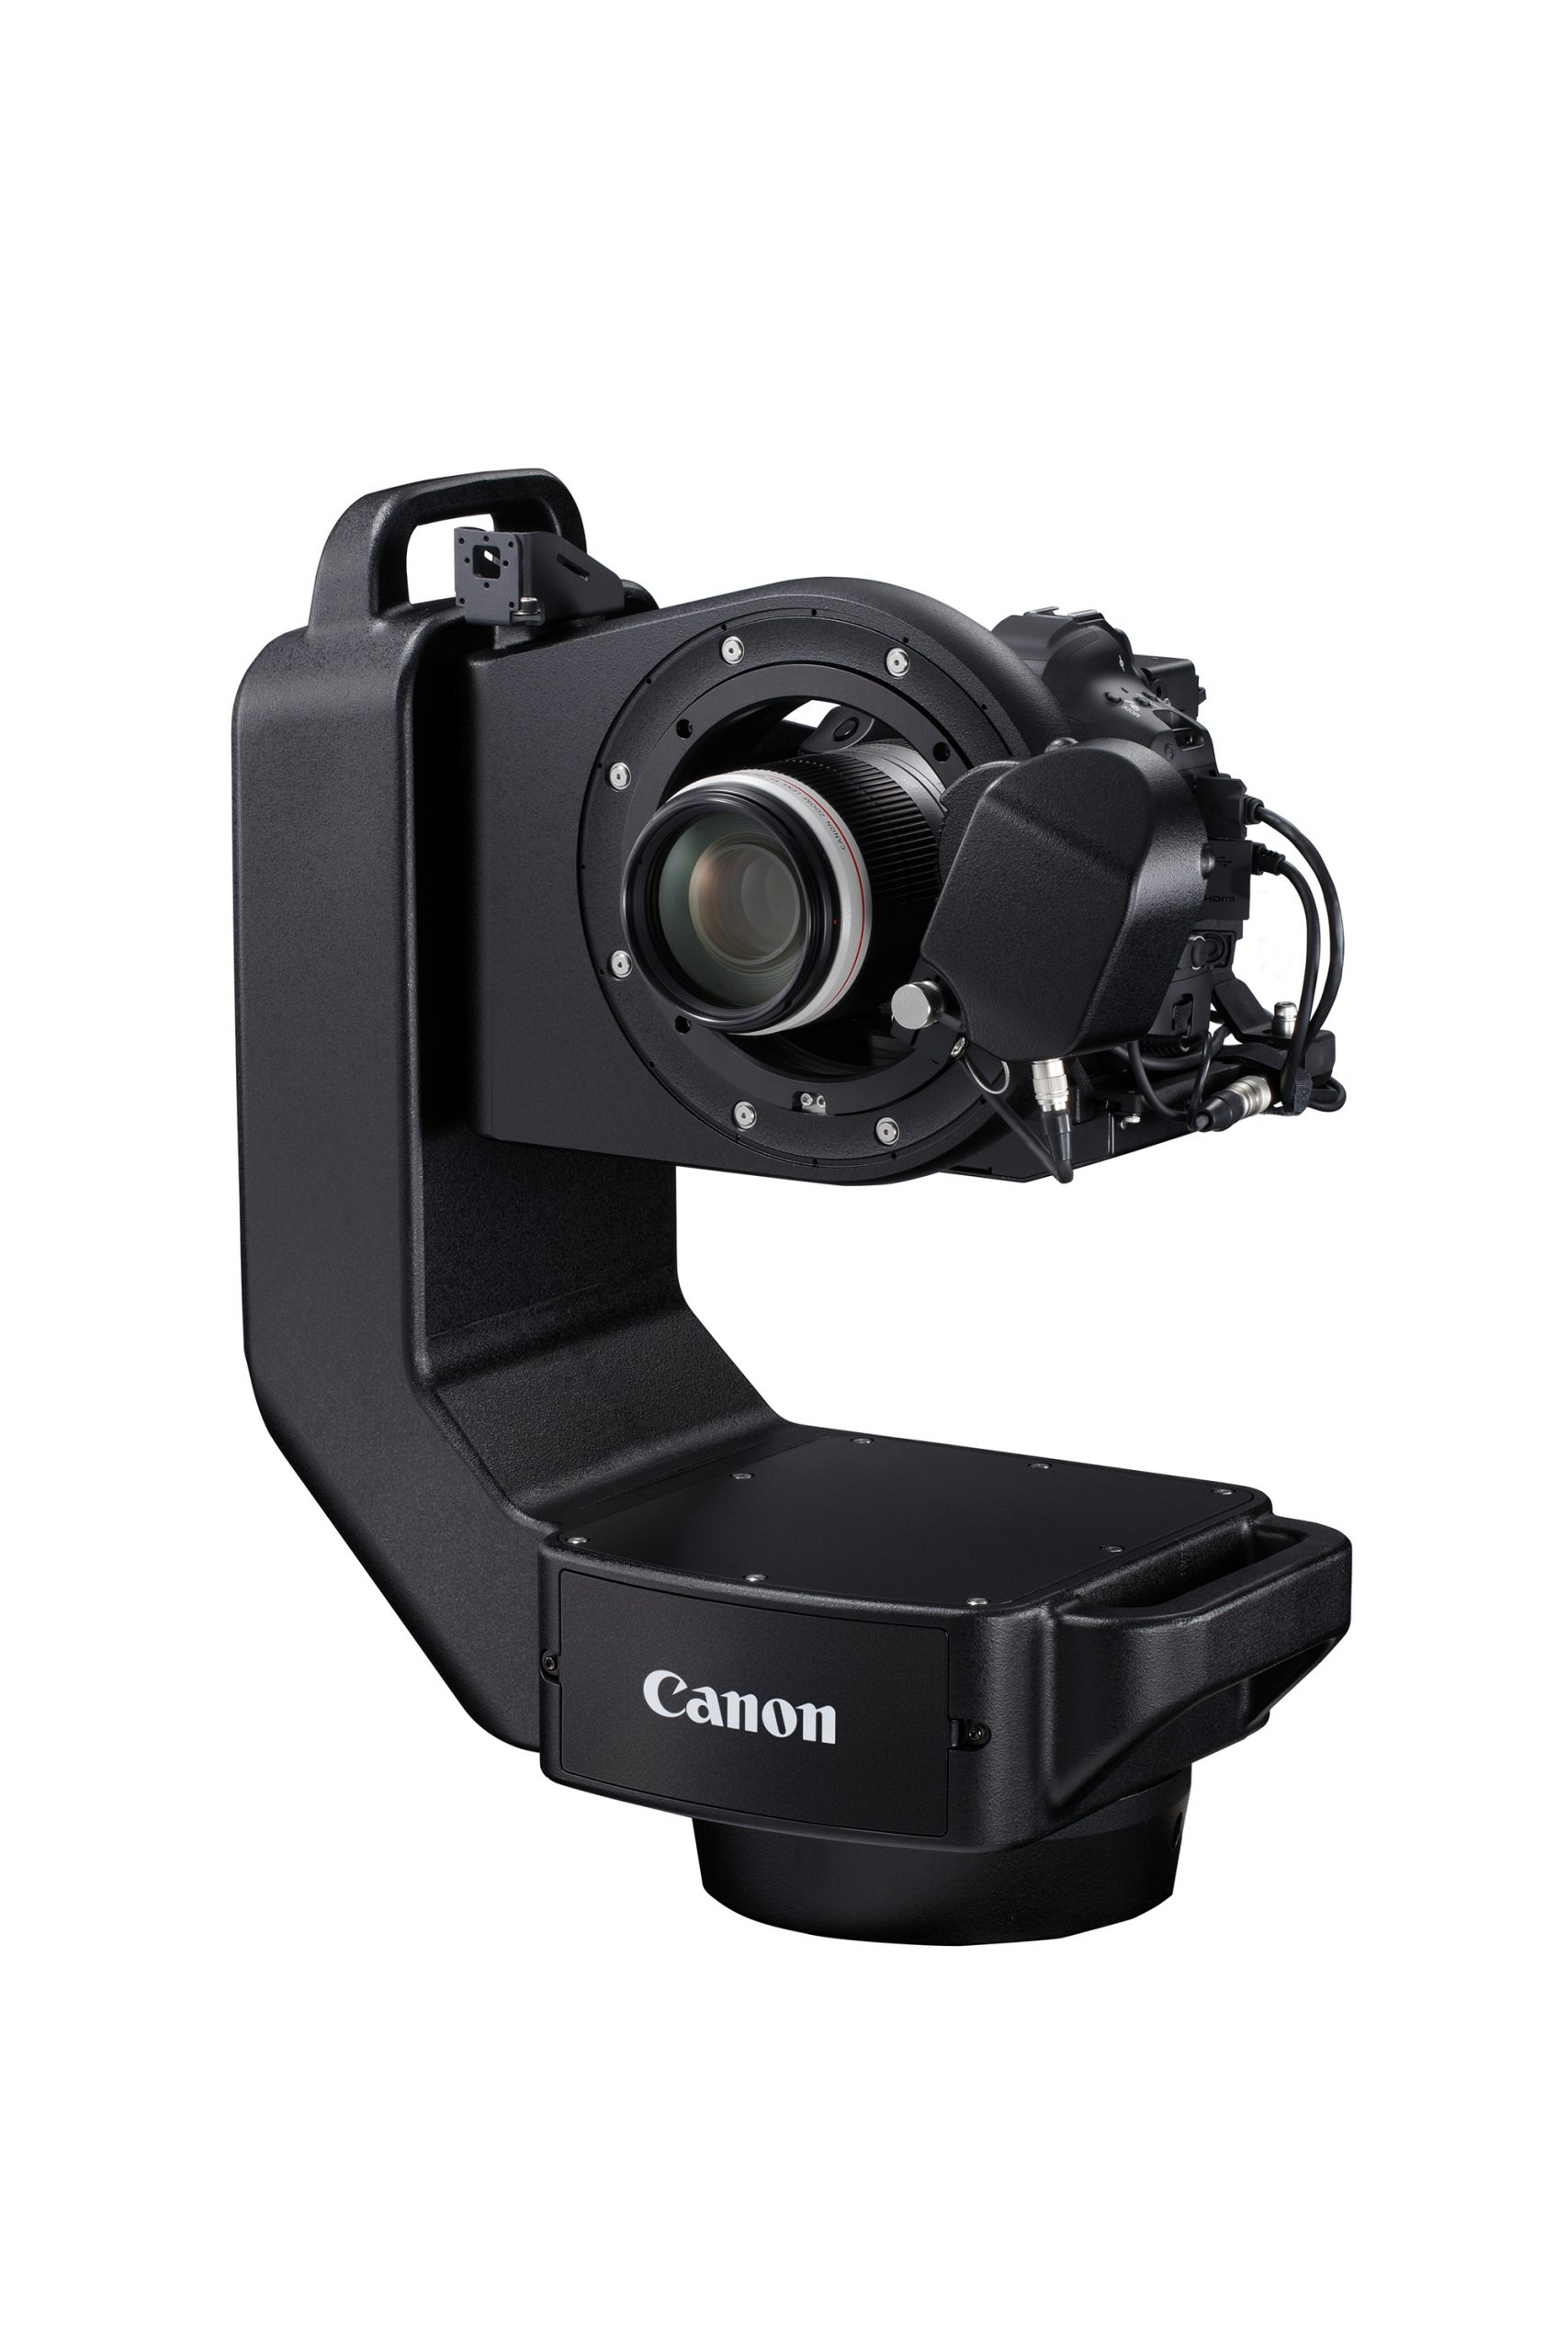 robotcam underslung hiRes scaled Canon Robotic DSLR Camera System